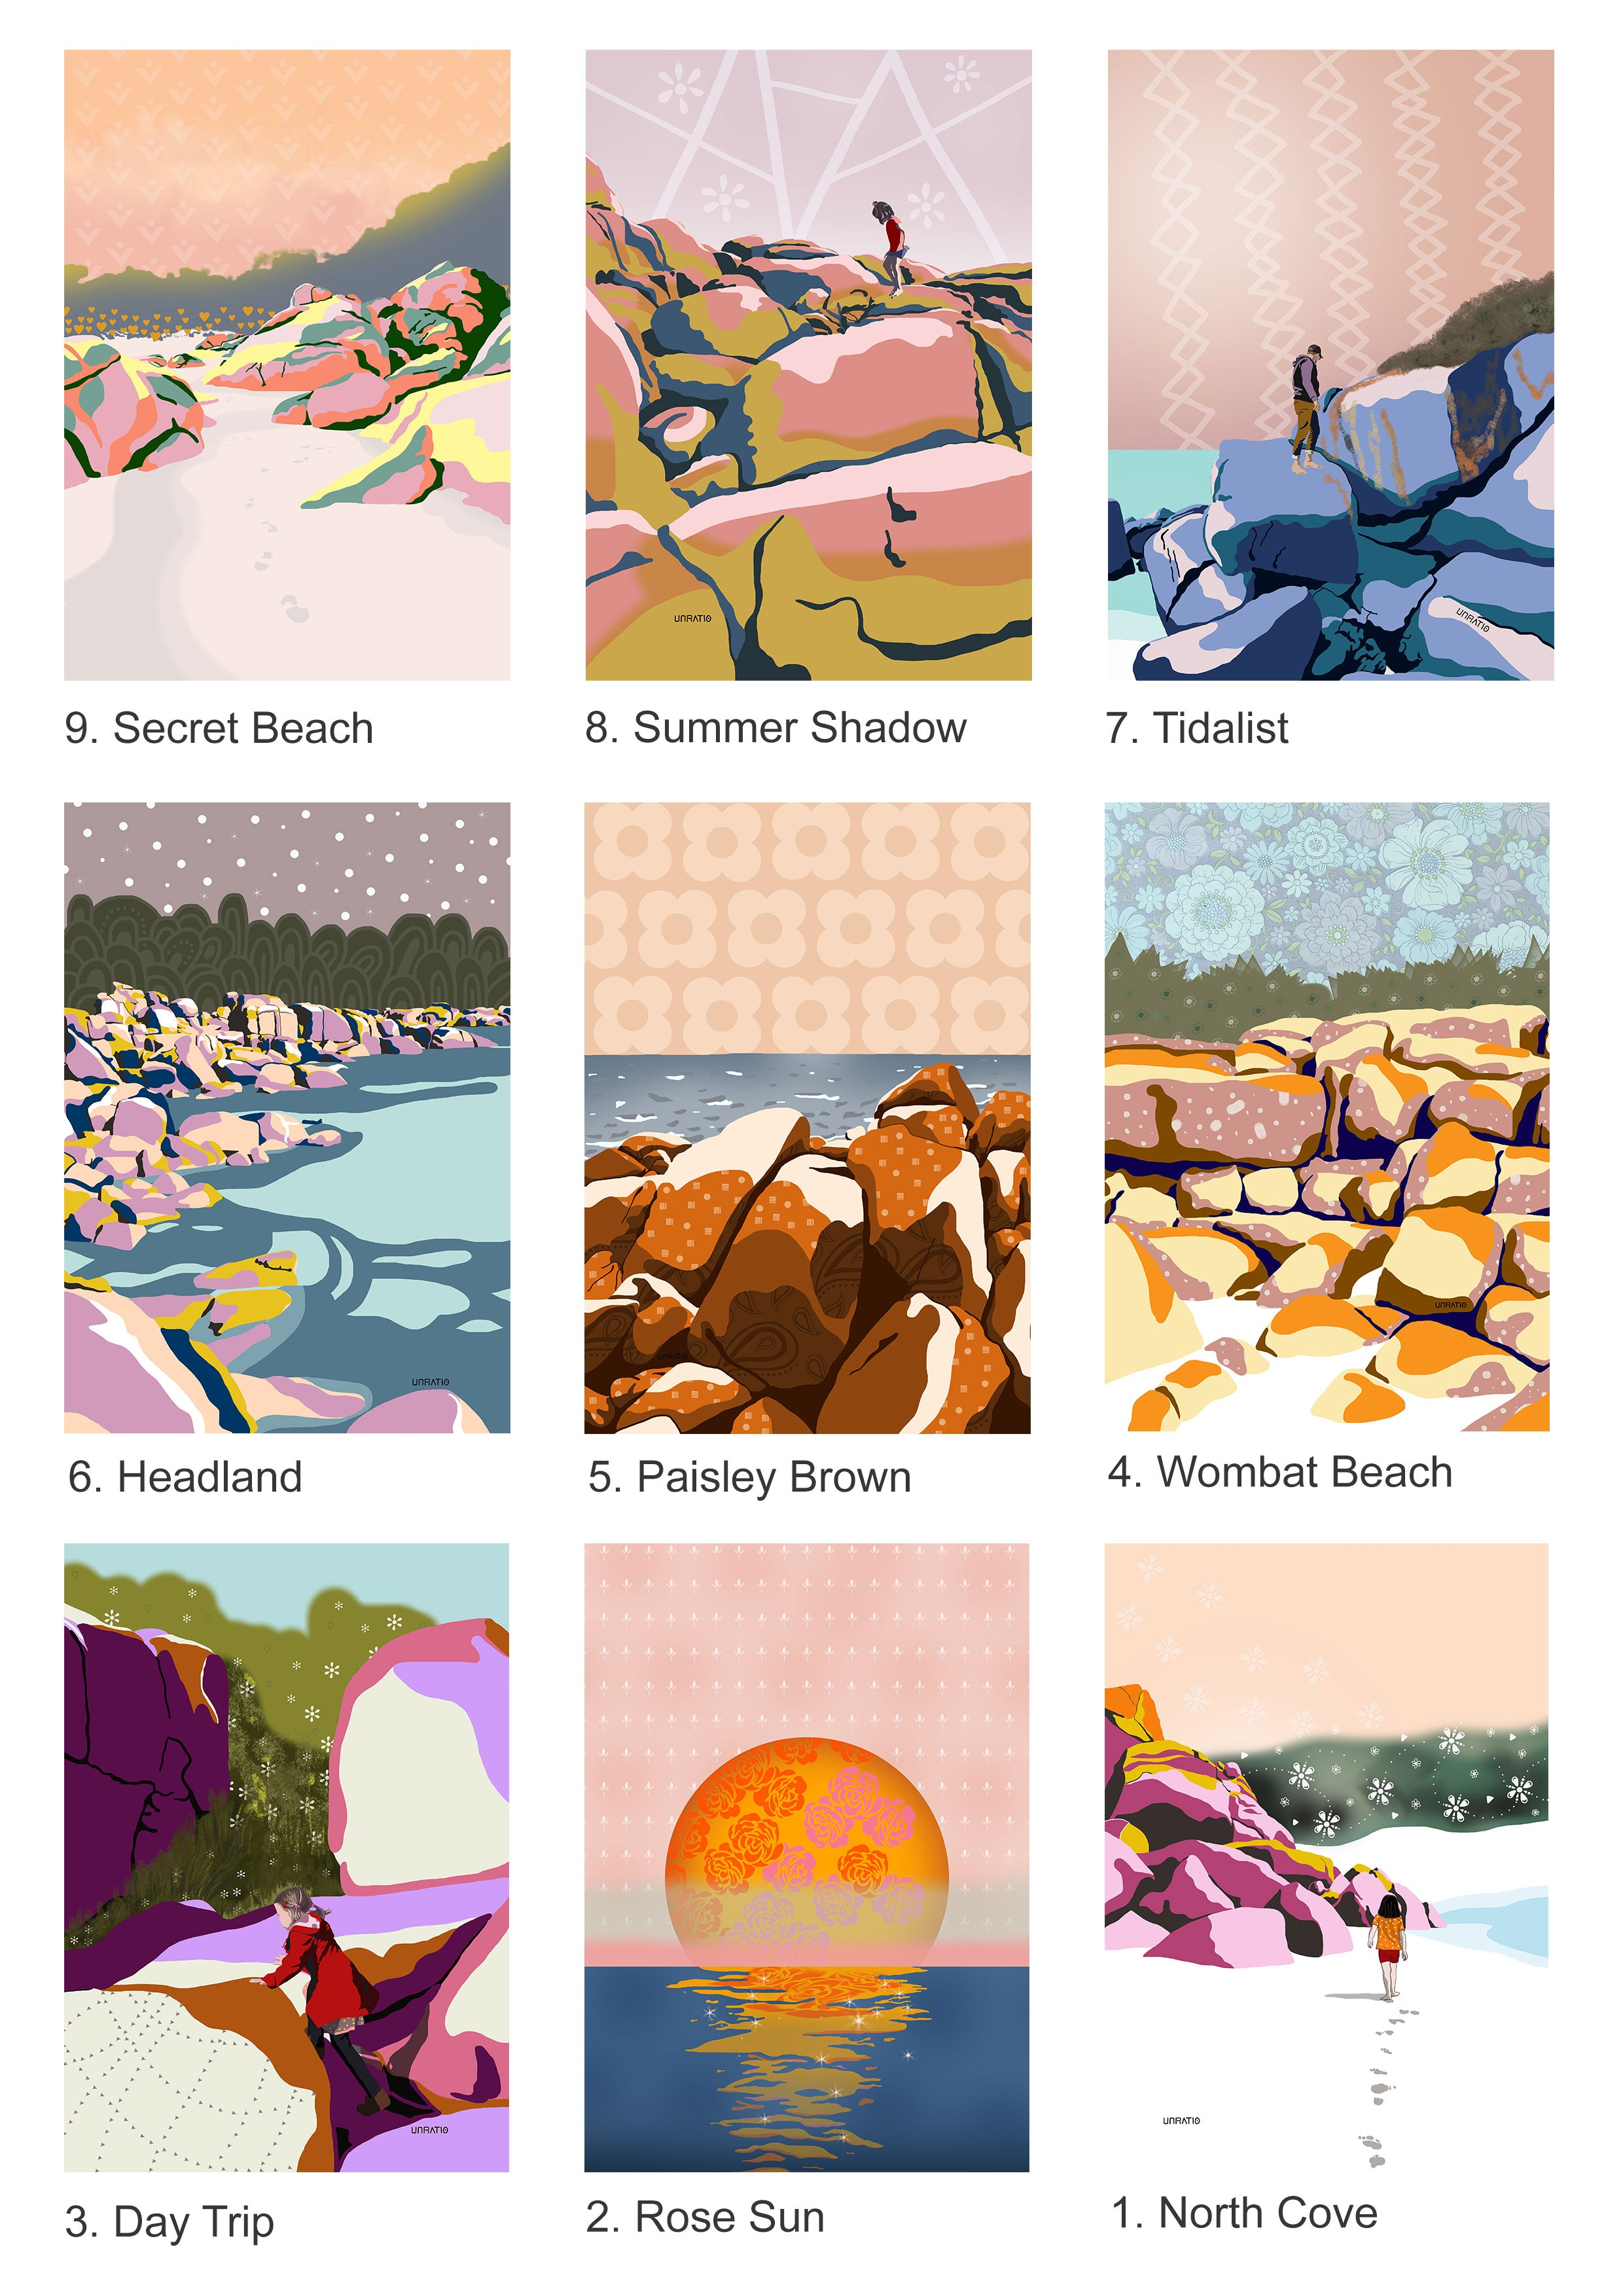 Catalogue of Abstract bright Australian beach illustration prints available for wholesale purchase